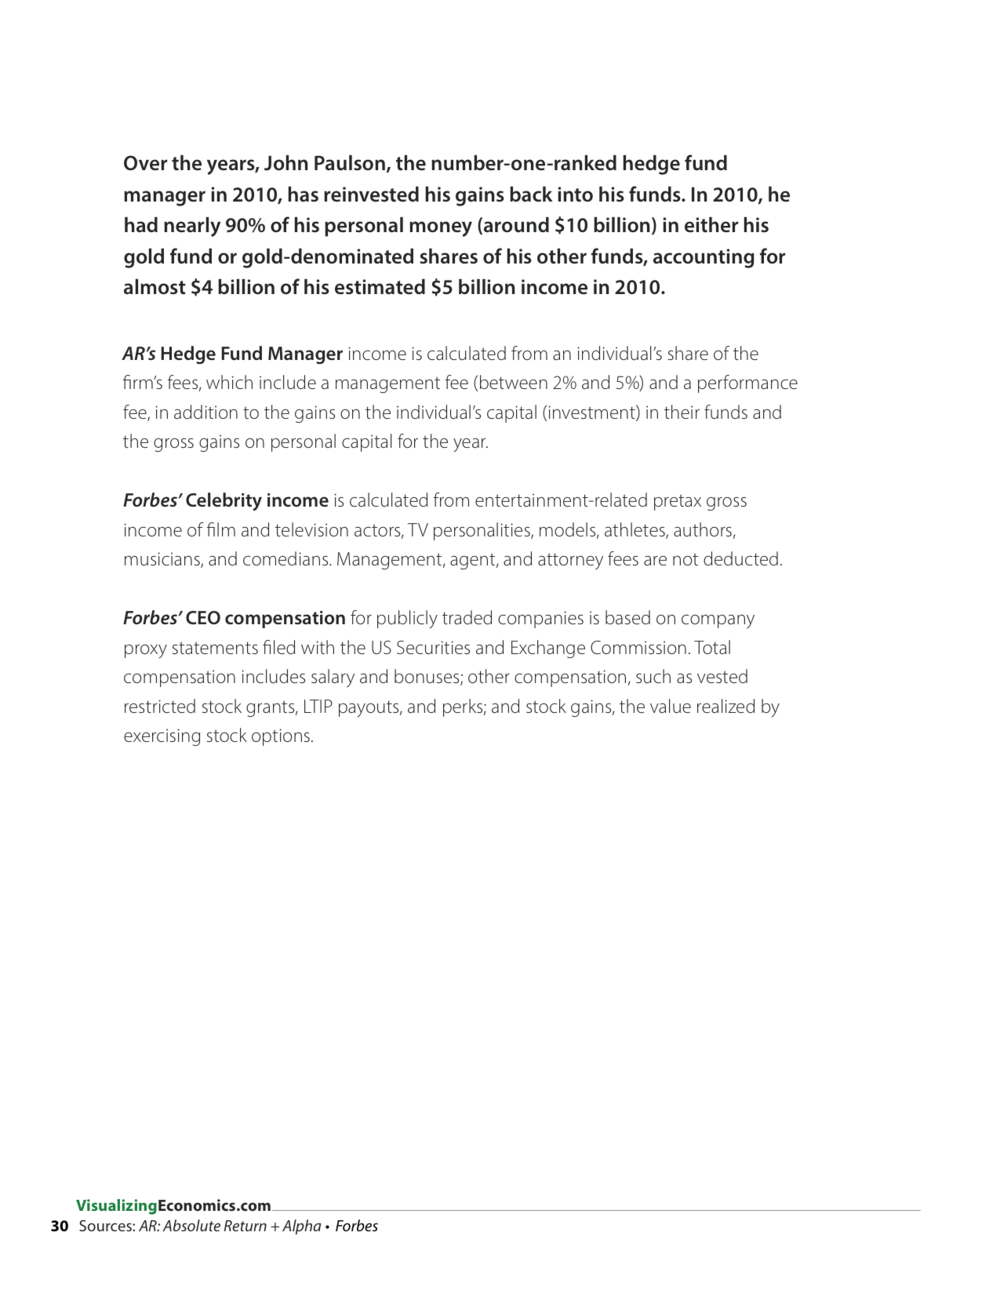 IncomeGuide_2013_Jan17_RGB_page 30_30.png